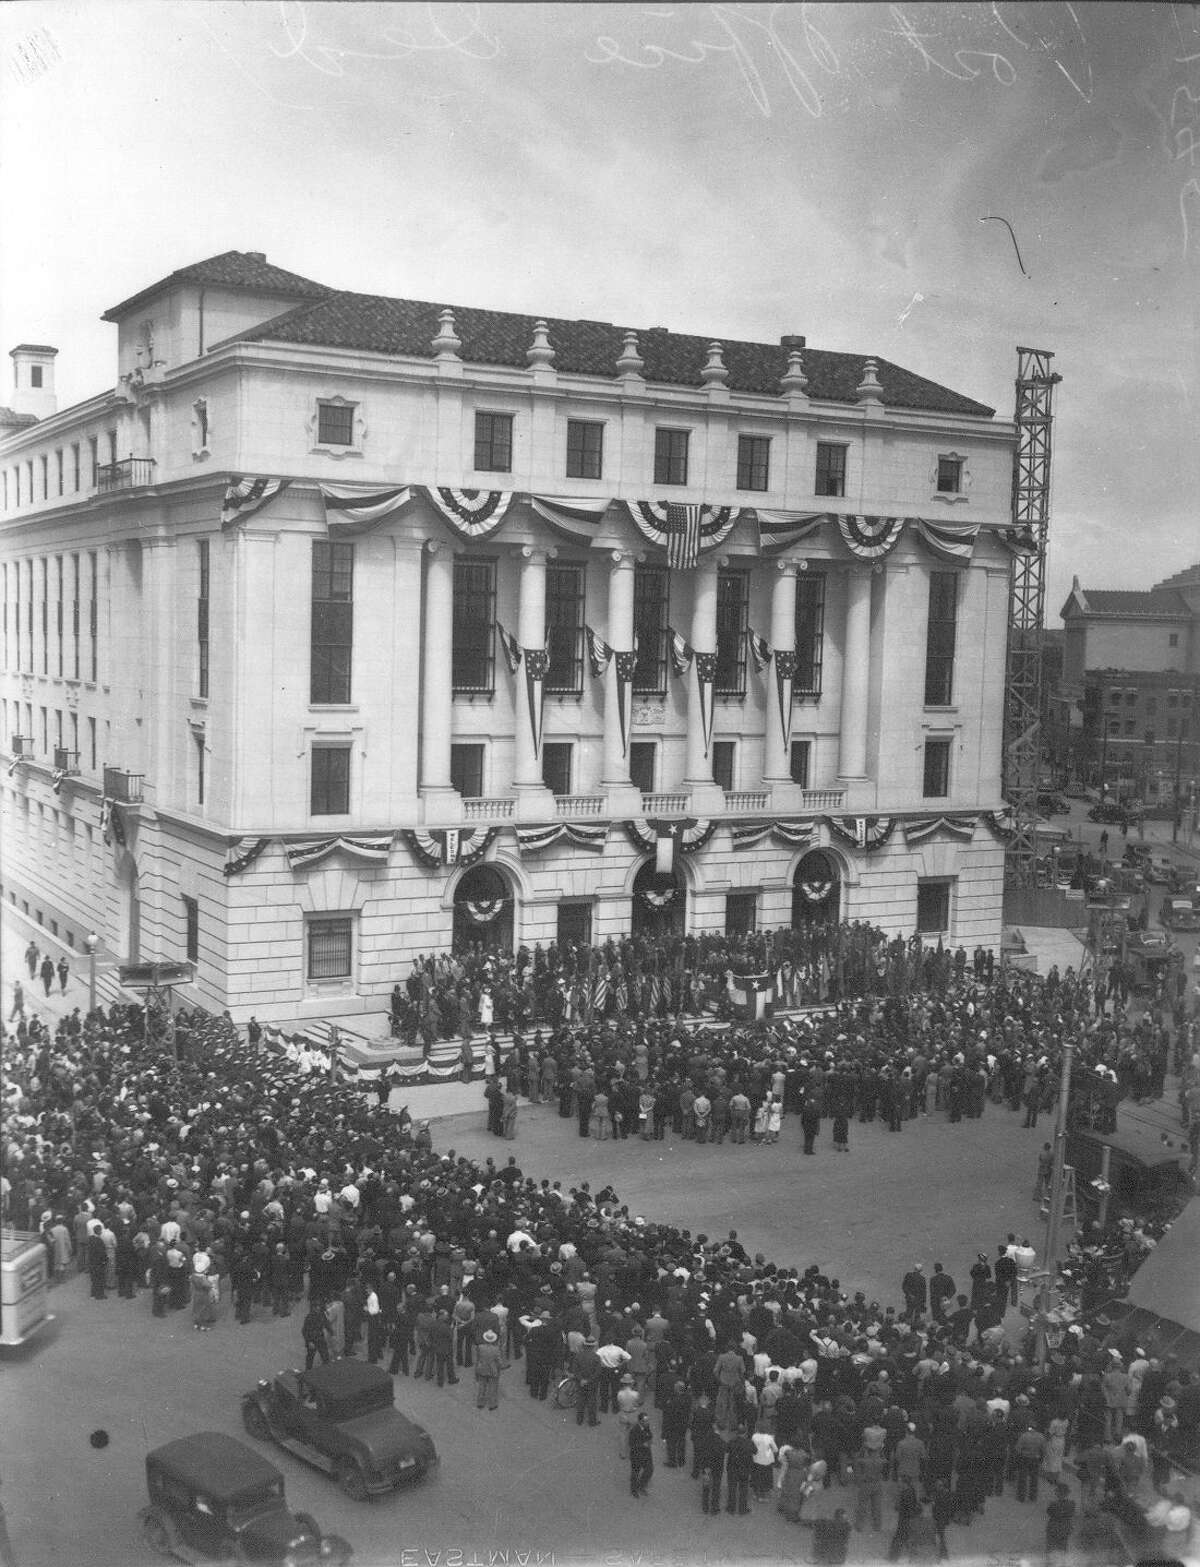 View of the crowd gathered in front of the Post Office for its dedication on March 24, 1937. Source: UTSA Libraries Special Collections, the Light Collection